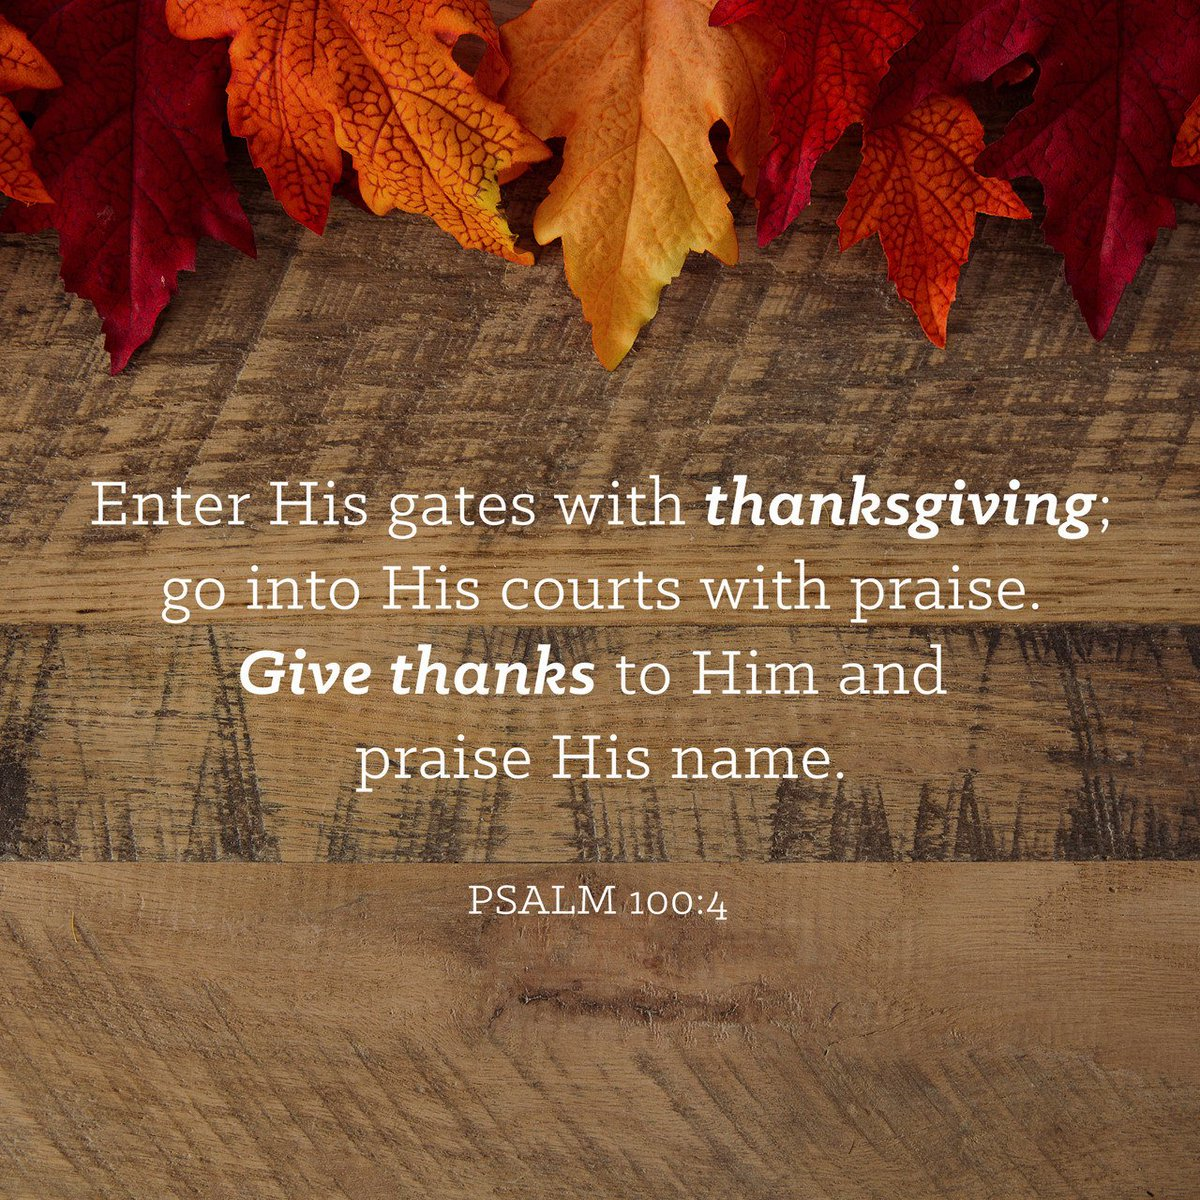 Enter his gates with thanksgiving and his courts with praise; give thanks to him and… https://t.co/WtEOKKWknF https://t.co/YC2gHOQHMI